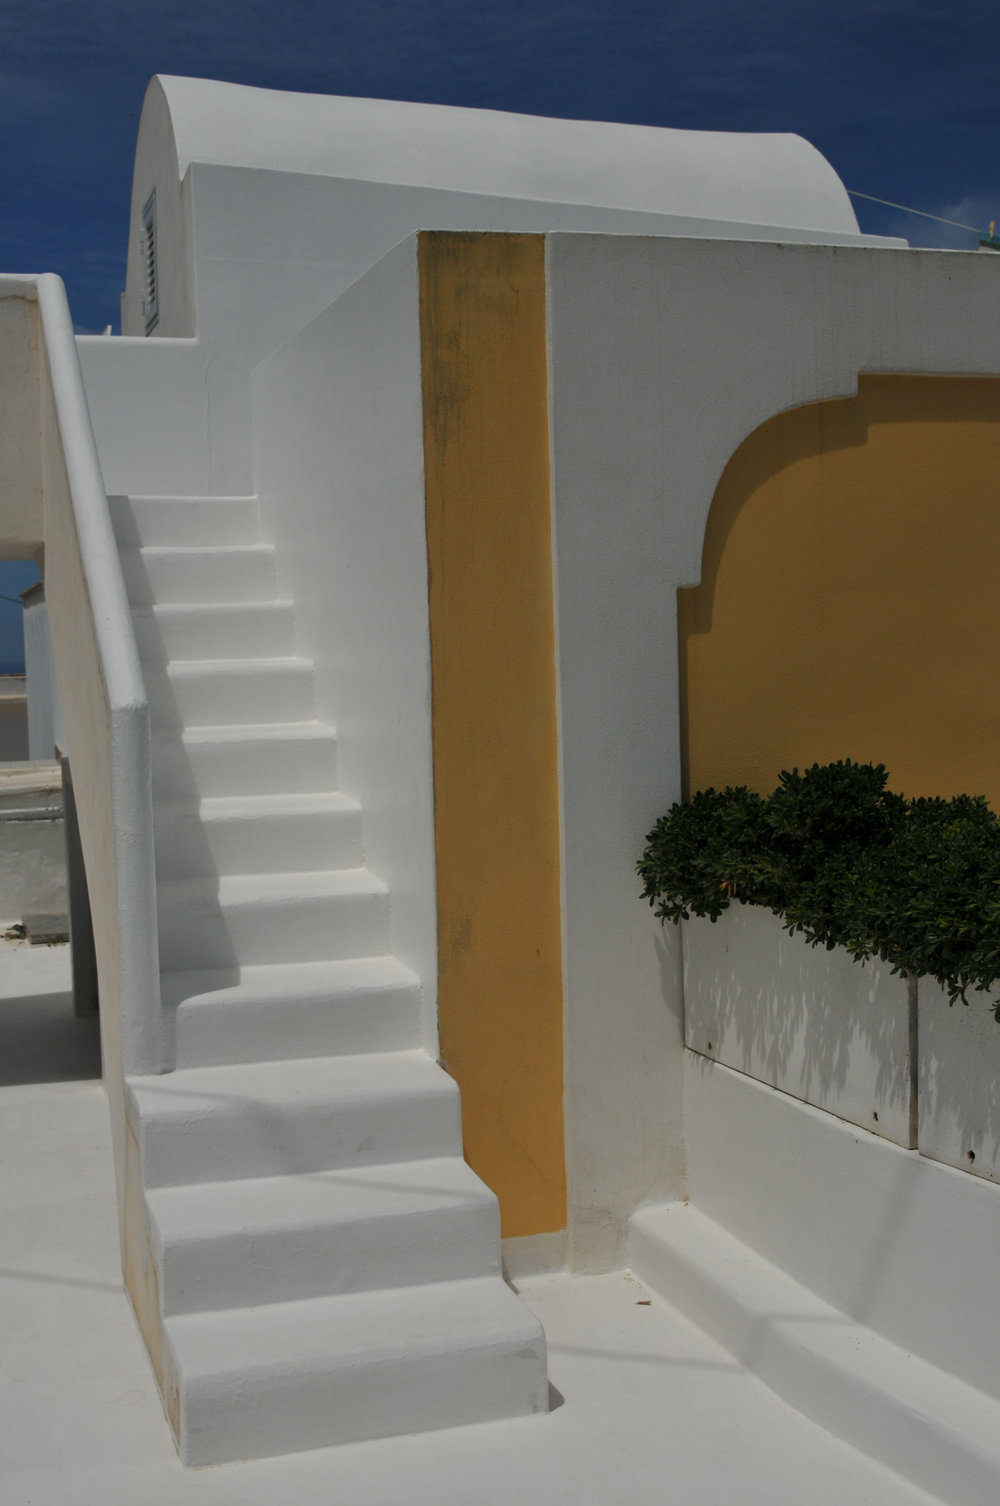 Modern construction in Ponza with an eye on traditional Greek construction and whitewash. The accents give away that it is a relatively new structure.